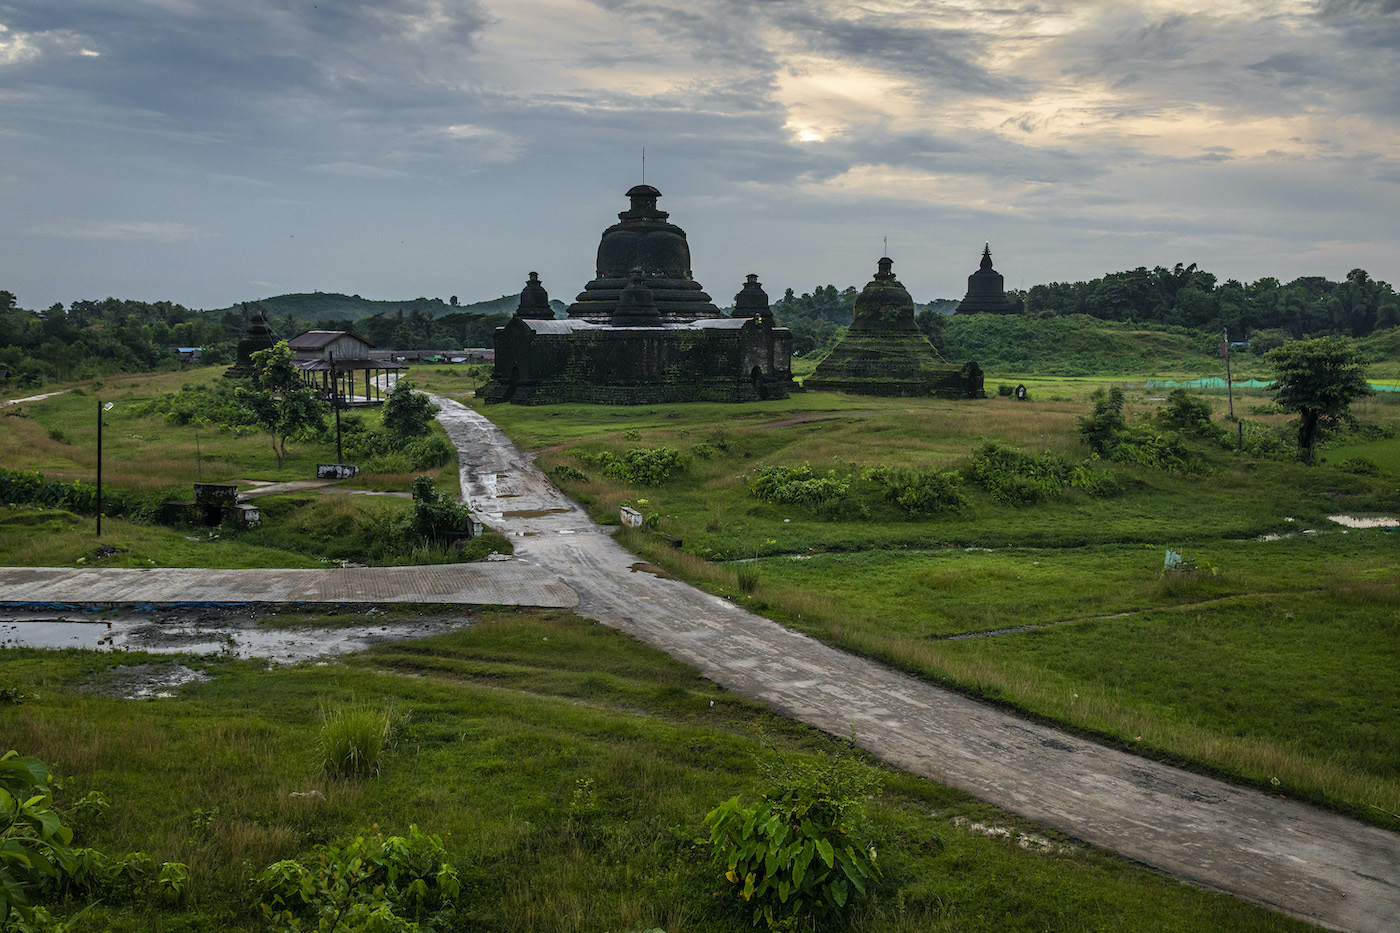 The Lay Myet Hna temple in Mrauk-U Township is seen on August 22. Voting in the November election has been canceled in the entire township, angering Rakhine politicians. (Hkun Lat | Frontier)